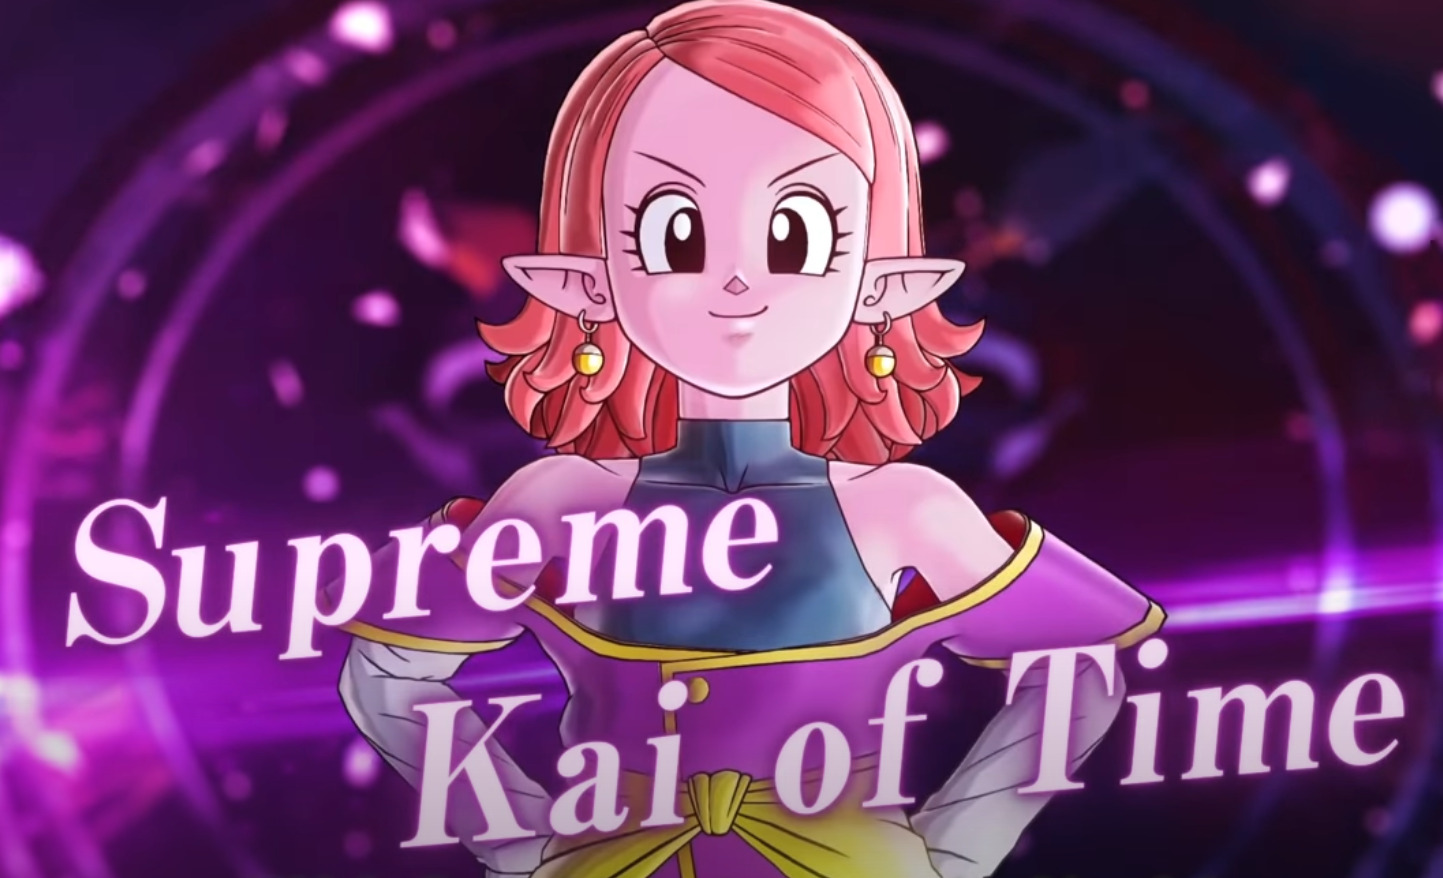 Dragon Ball Xenoverse 2 Adds Supreme Kai Of Time As A Playable Character Along With A New Mission And Cute Mascots Happy Gamer